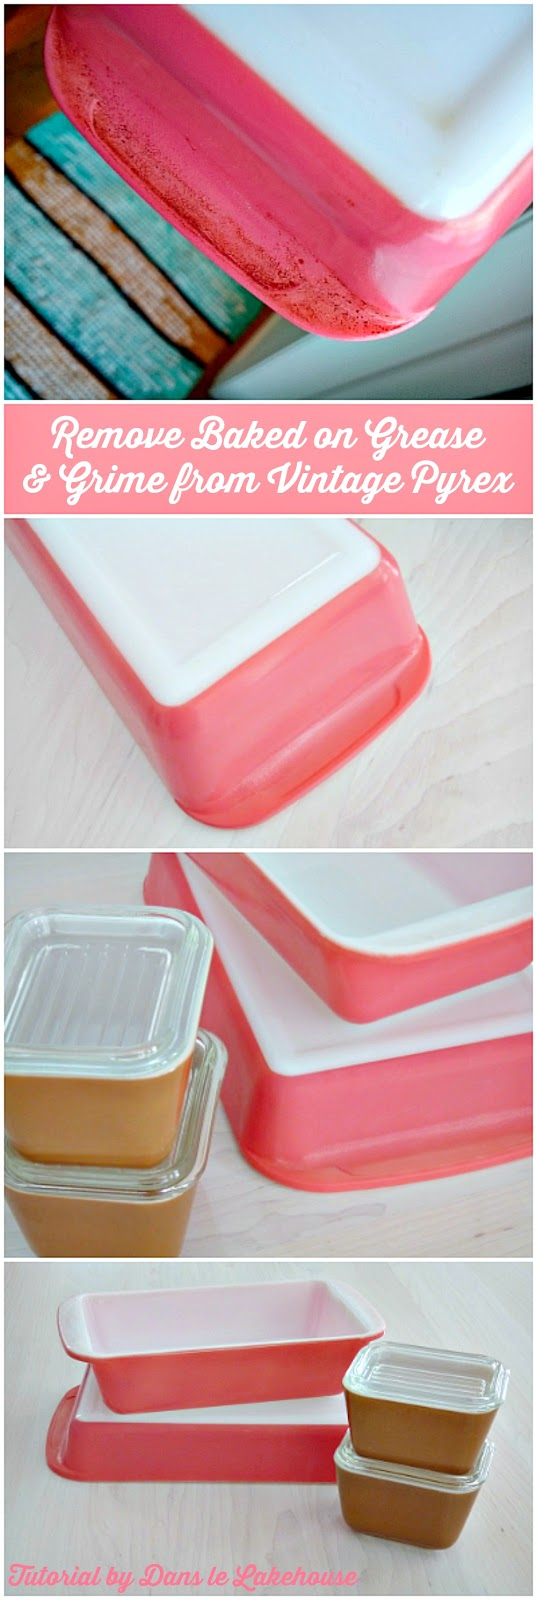 how to clean baked on burnt on grease and grime from vintage pyrex bake ware dans le lakehouse. Black Bedroom Furniture Sets. Home Design Ideas